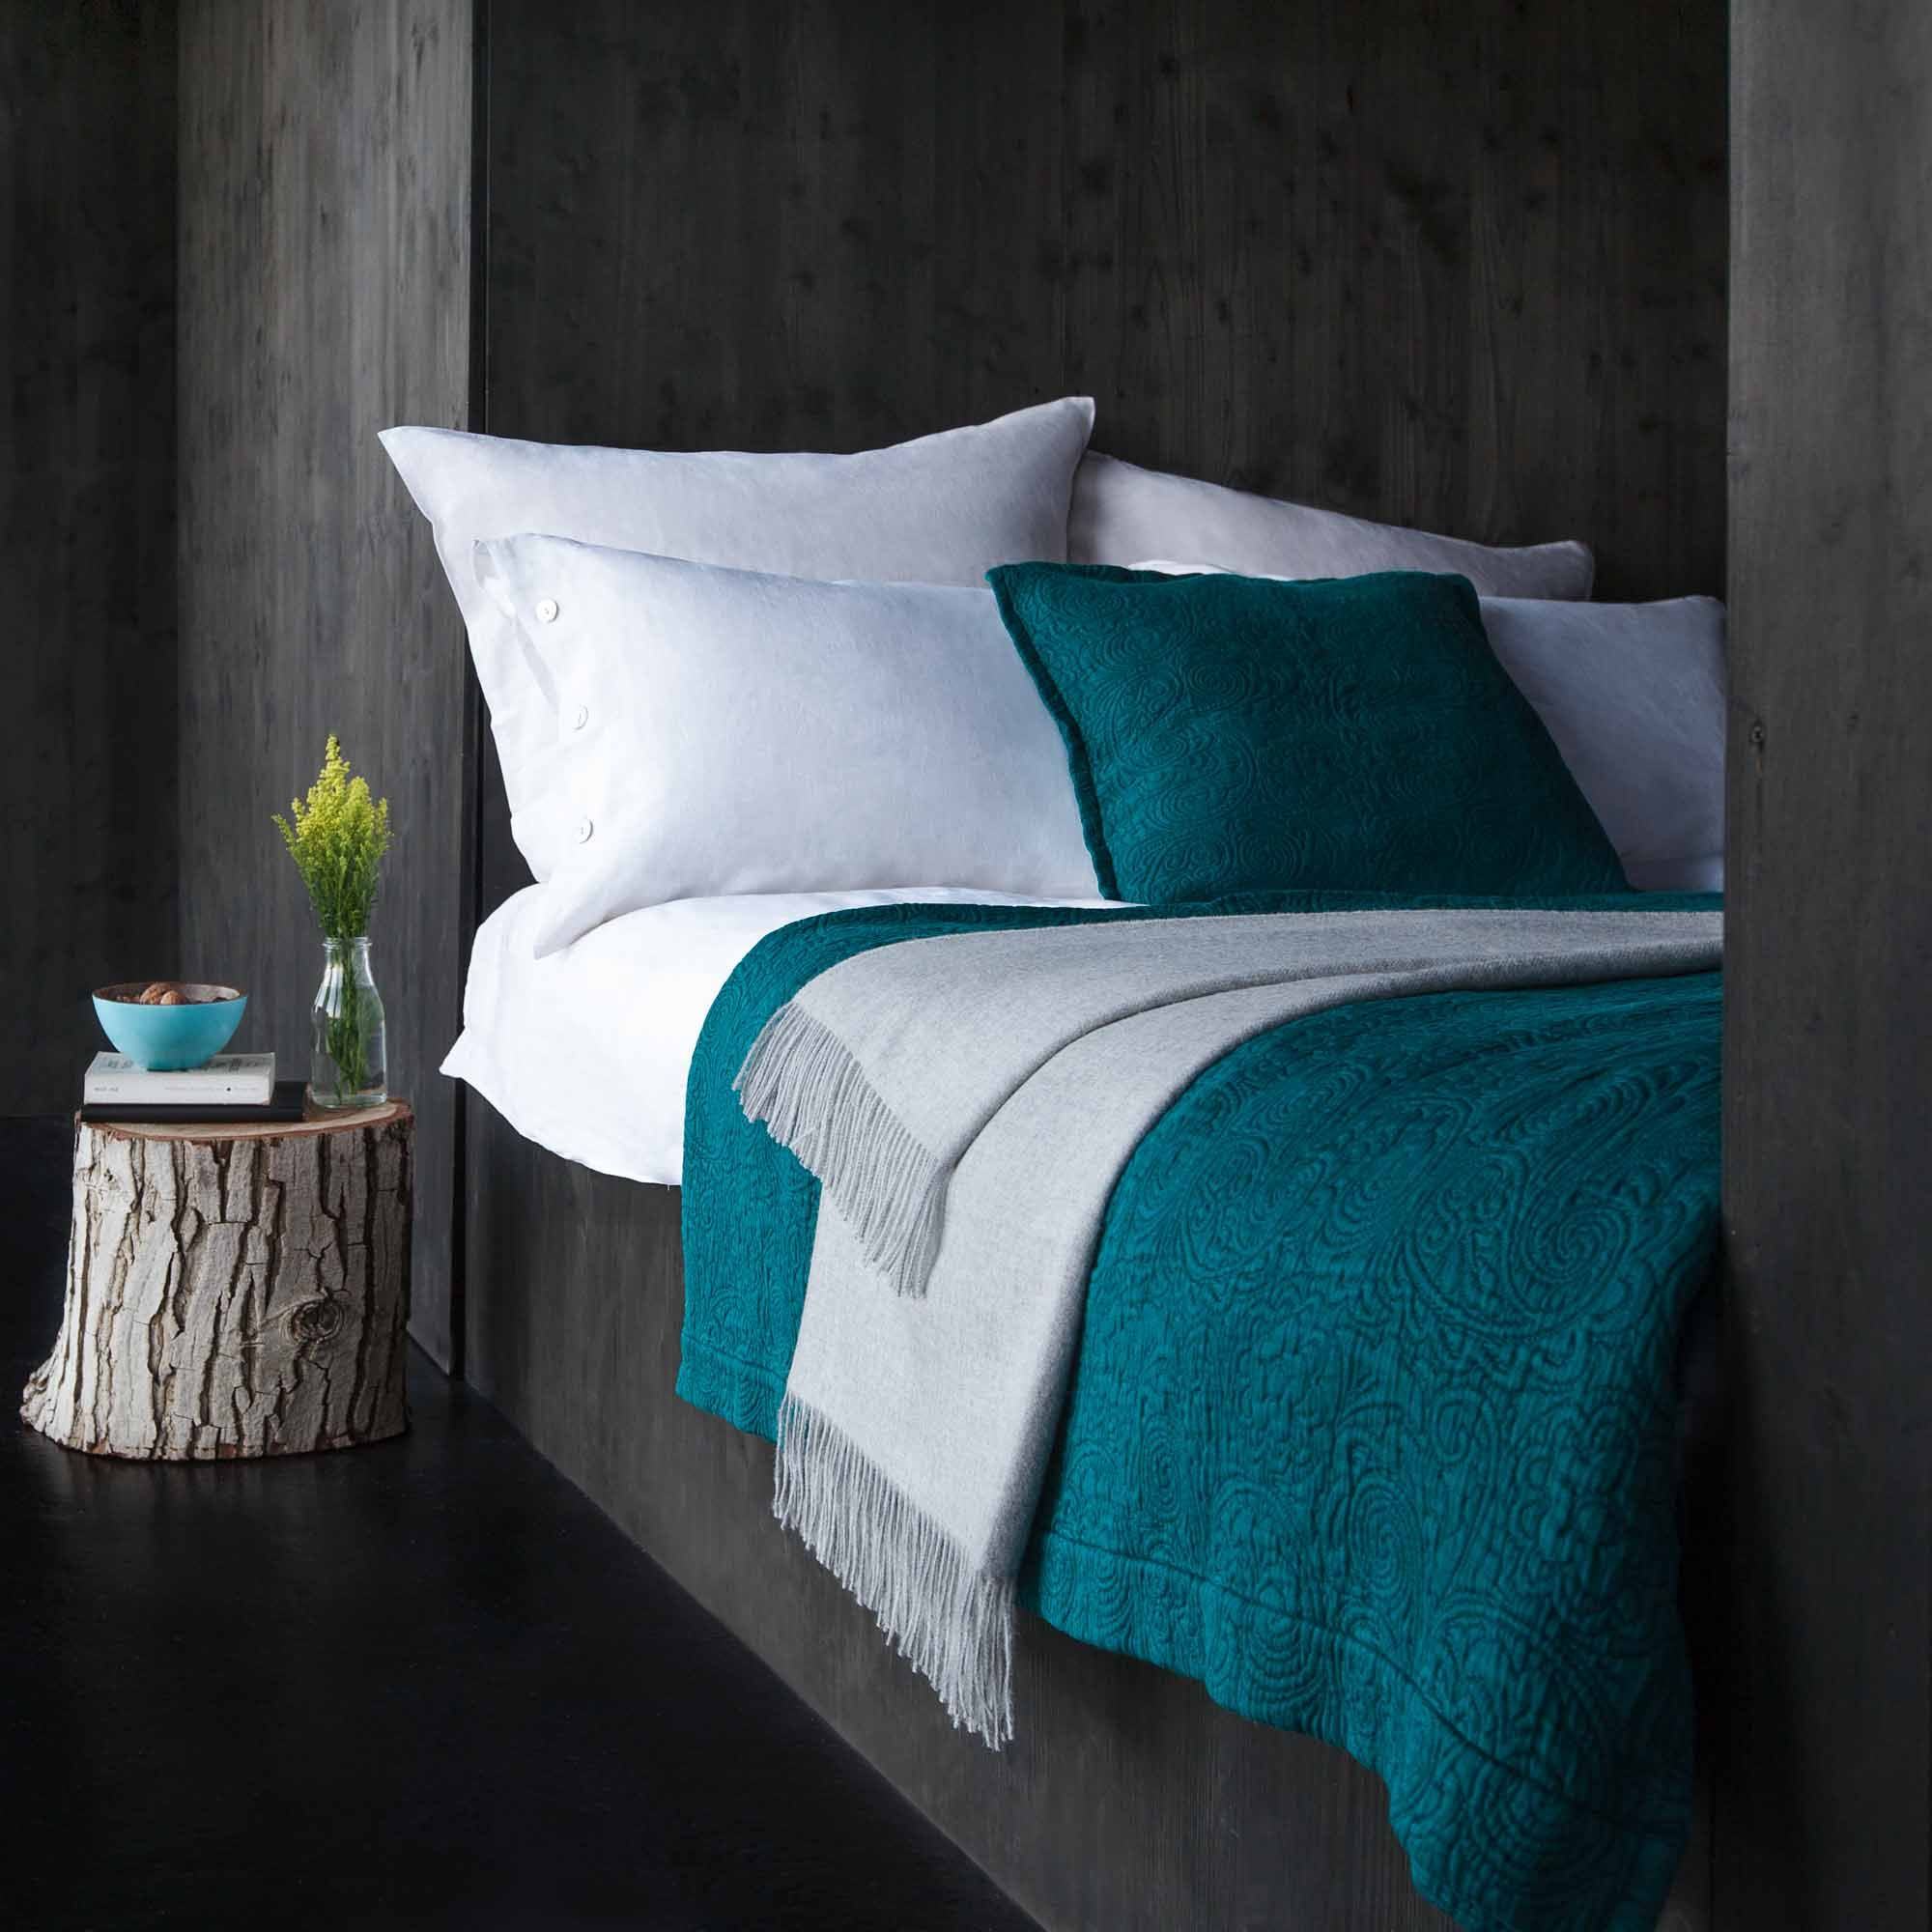 teal and grey bedroom tones urbanara teba teal bedspread love these colors home bedroom. Black Bedroom Furniture Sets. Home Design Ideas